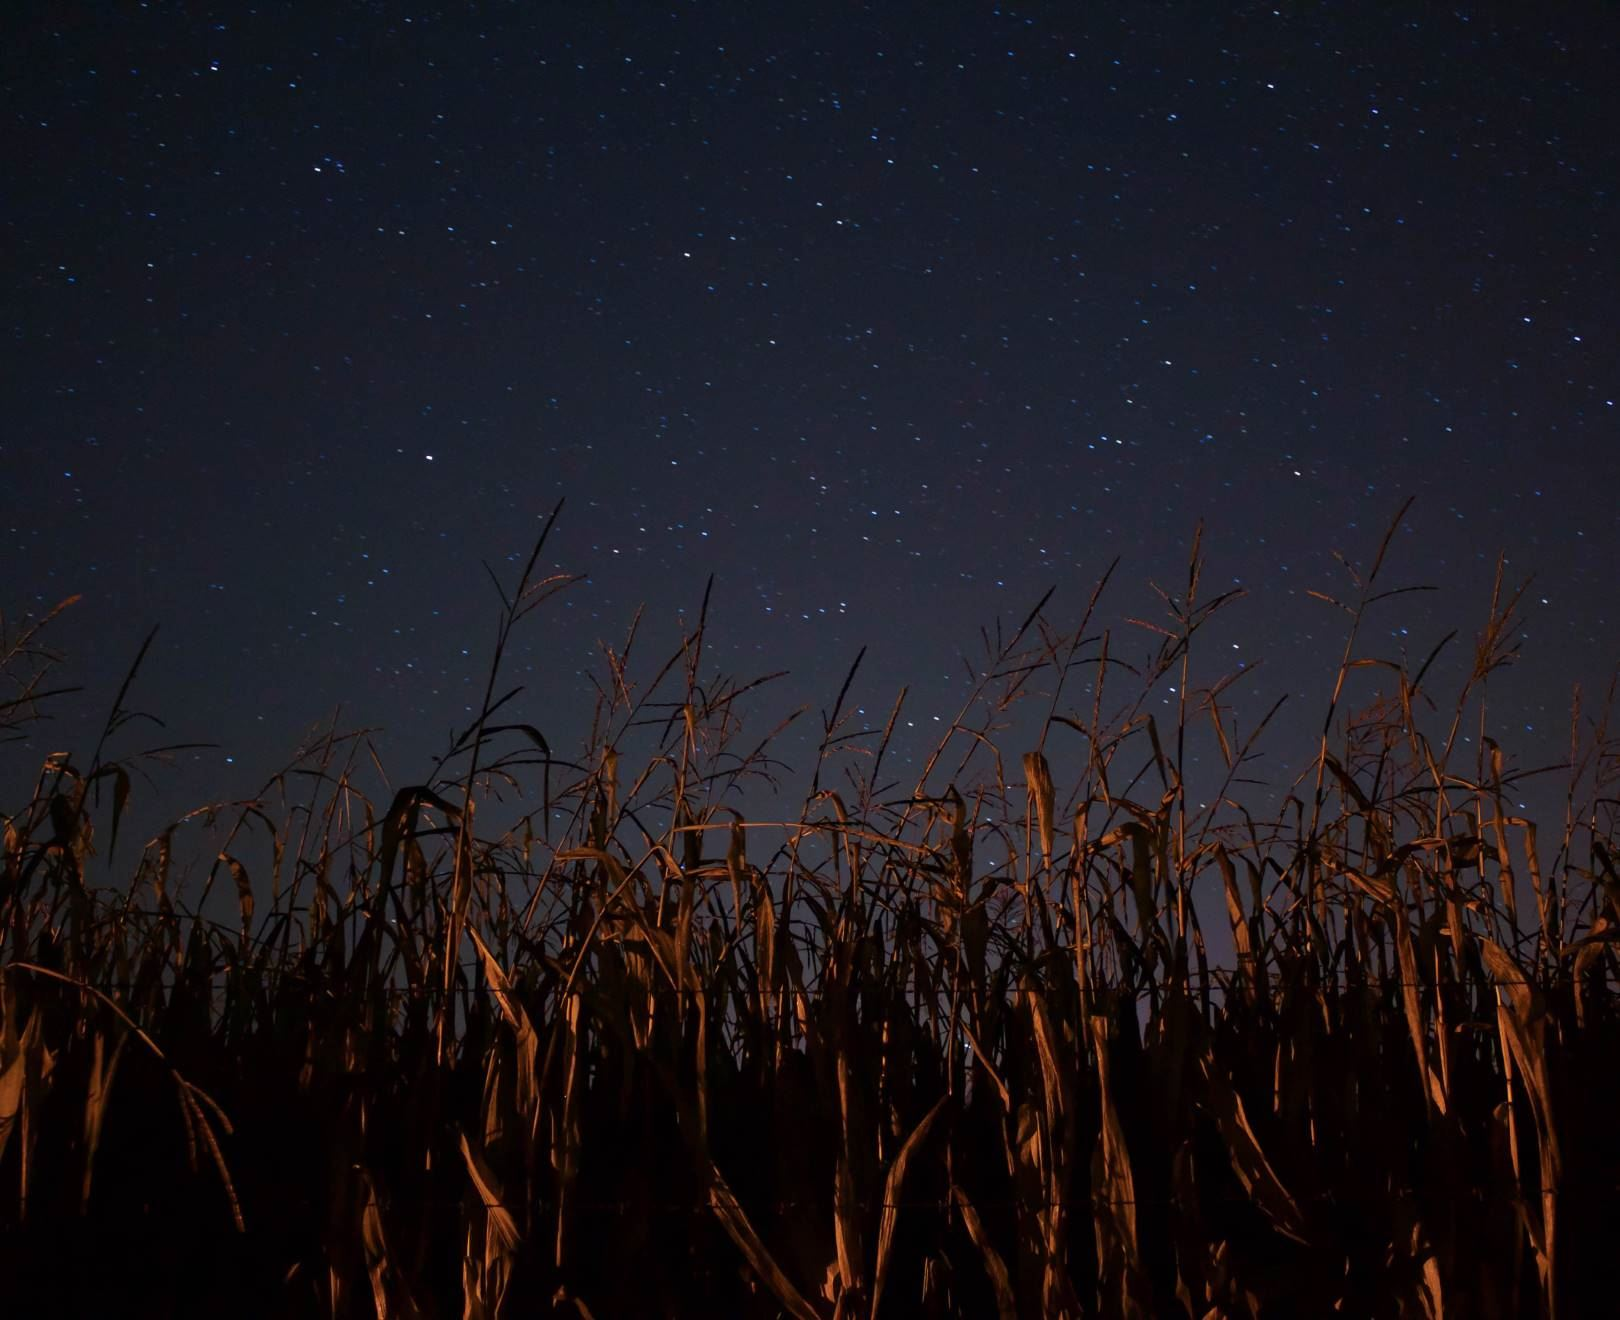 Wheat Under Night Sky